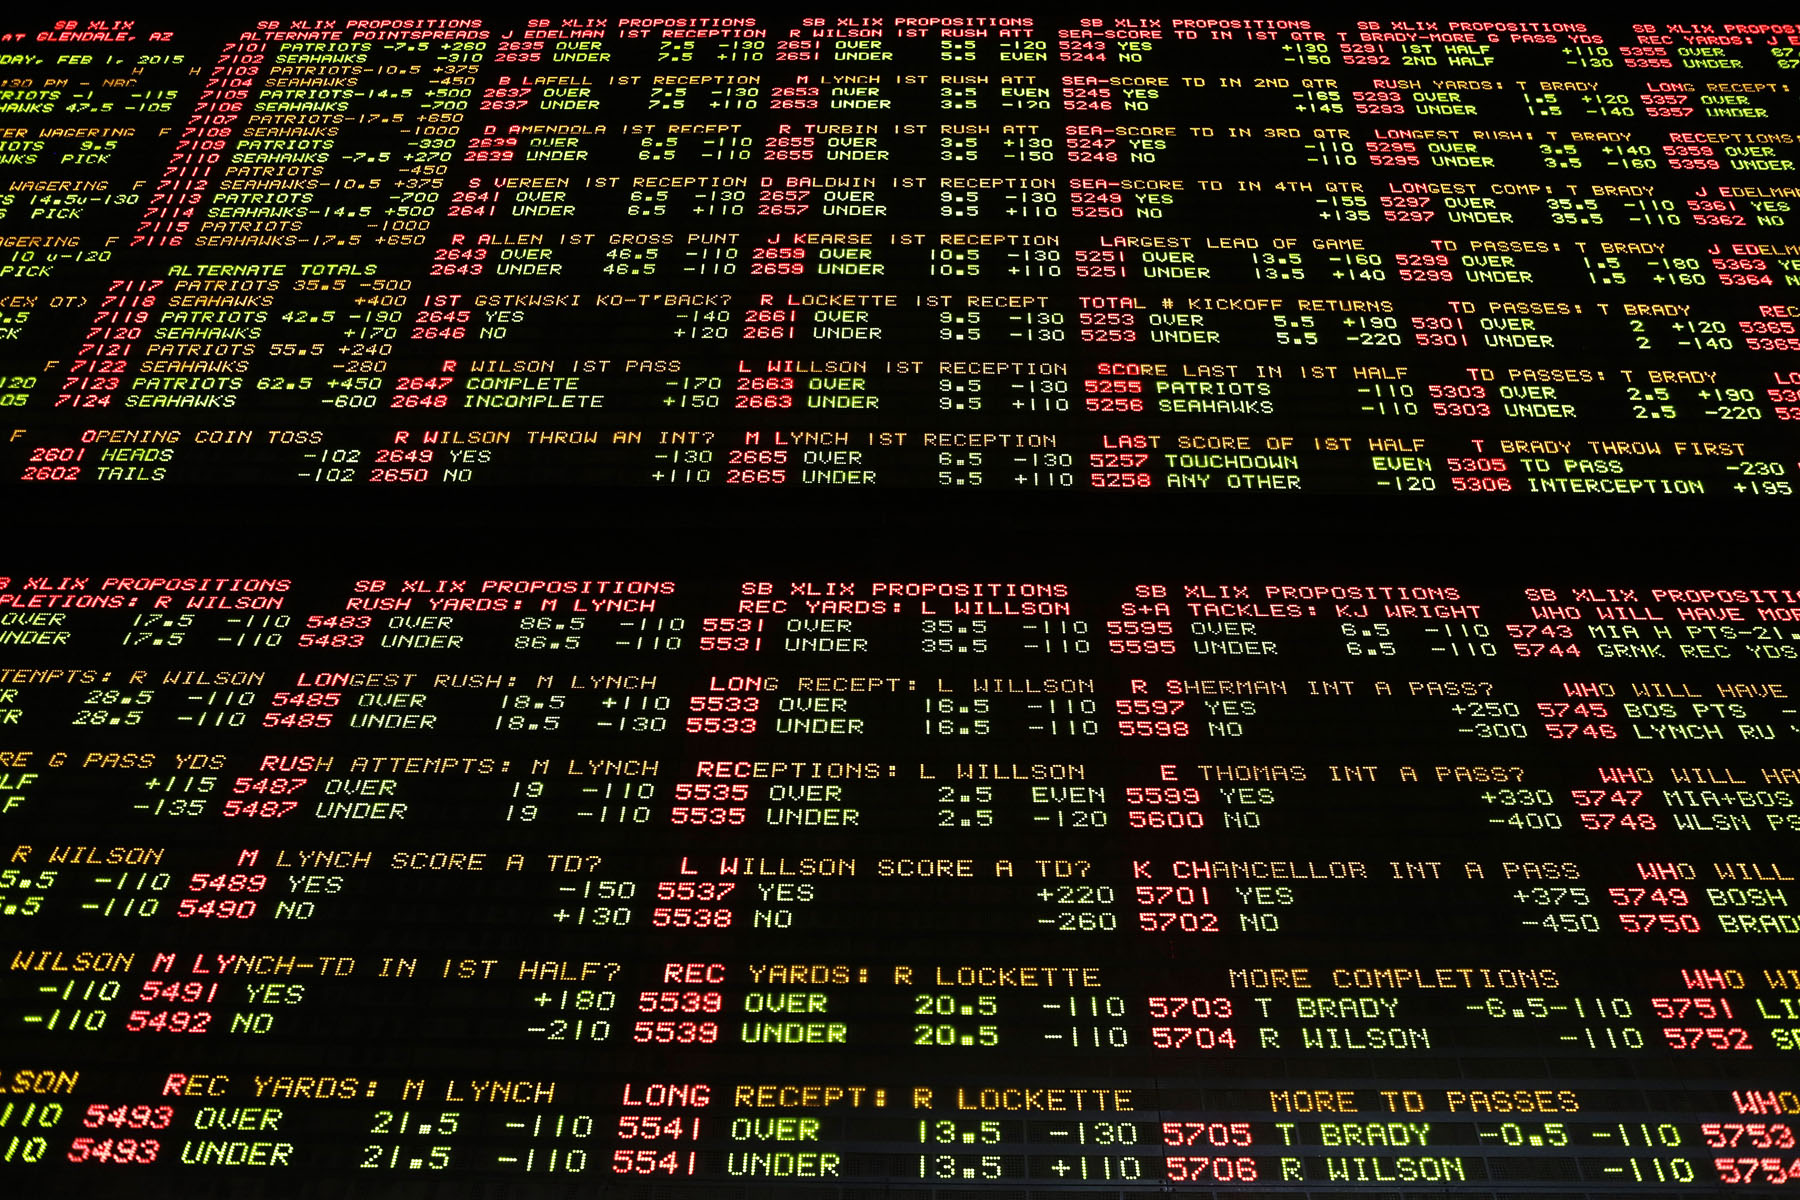 vegas odds on bowl games luxor sportsbook